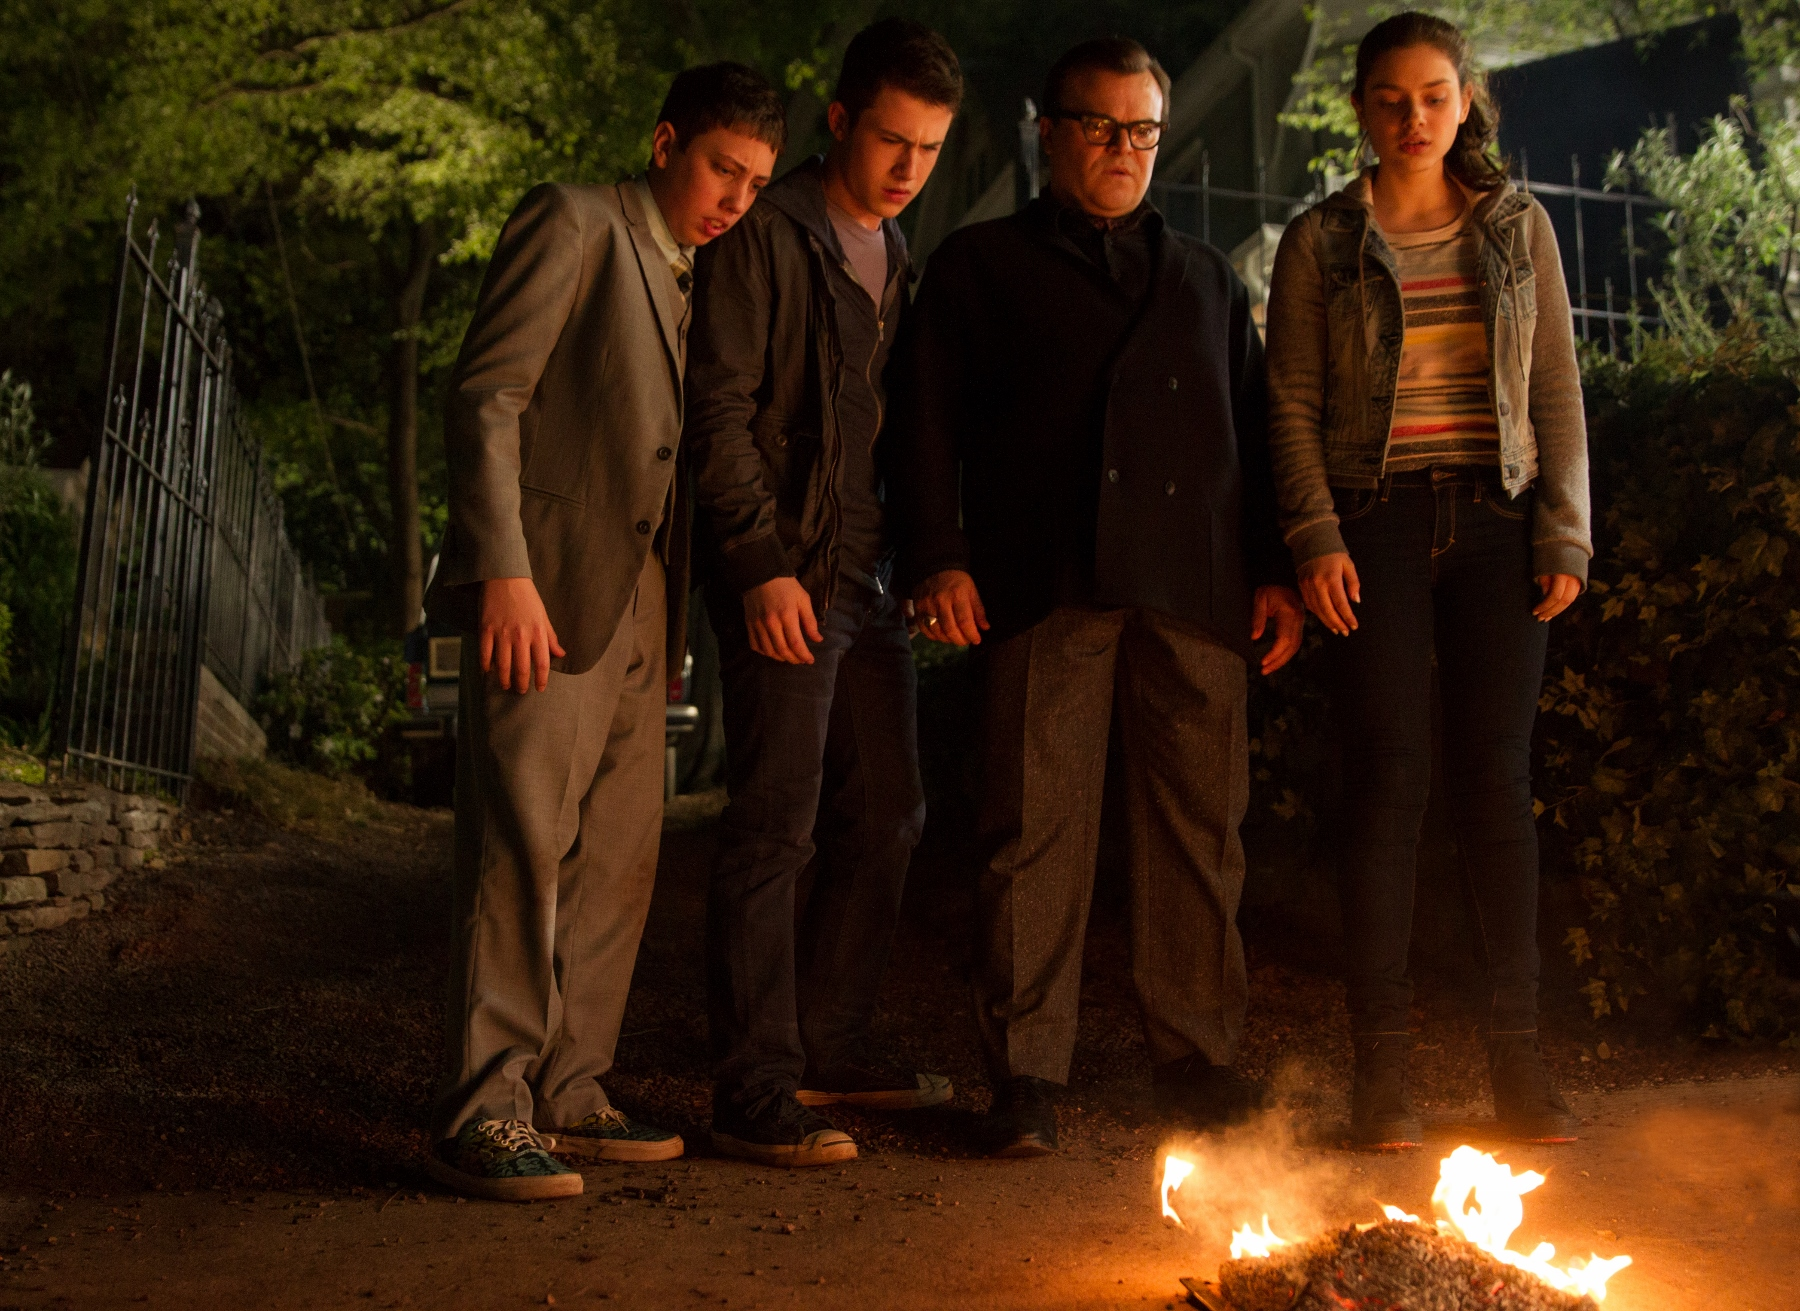 "<p>Dylan Minnette, Jack Black, Odeya Rush and Ryan Lee star in <em>Goosebumps, </em>based on the books by R.L. Stine,<span style=""font-family: proxima-nova-n4, proxima-nova, 'Helvetica Neue', Helvetica, Arial, sans-serif; font-size: 18px; line-height: 28px;""> the story of how the monsters from his books escape into the world, wreak havoc, and the attempts that are made to get them back onto the pages where they belong.</span></p>"